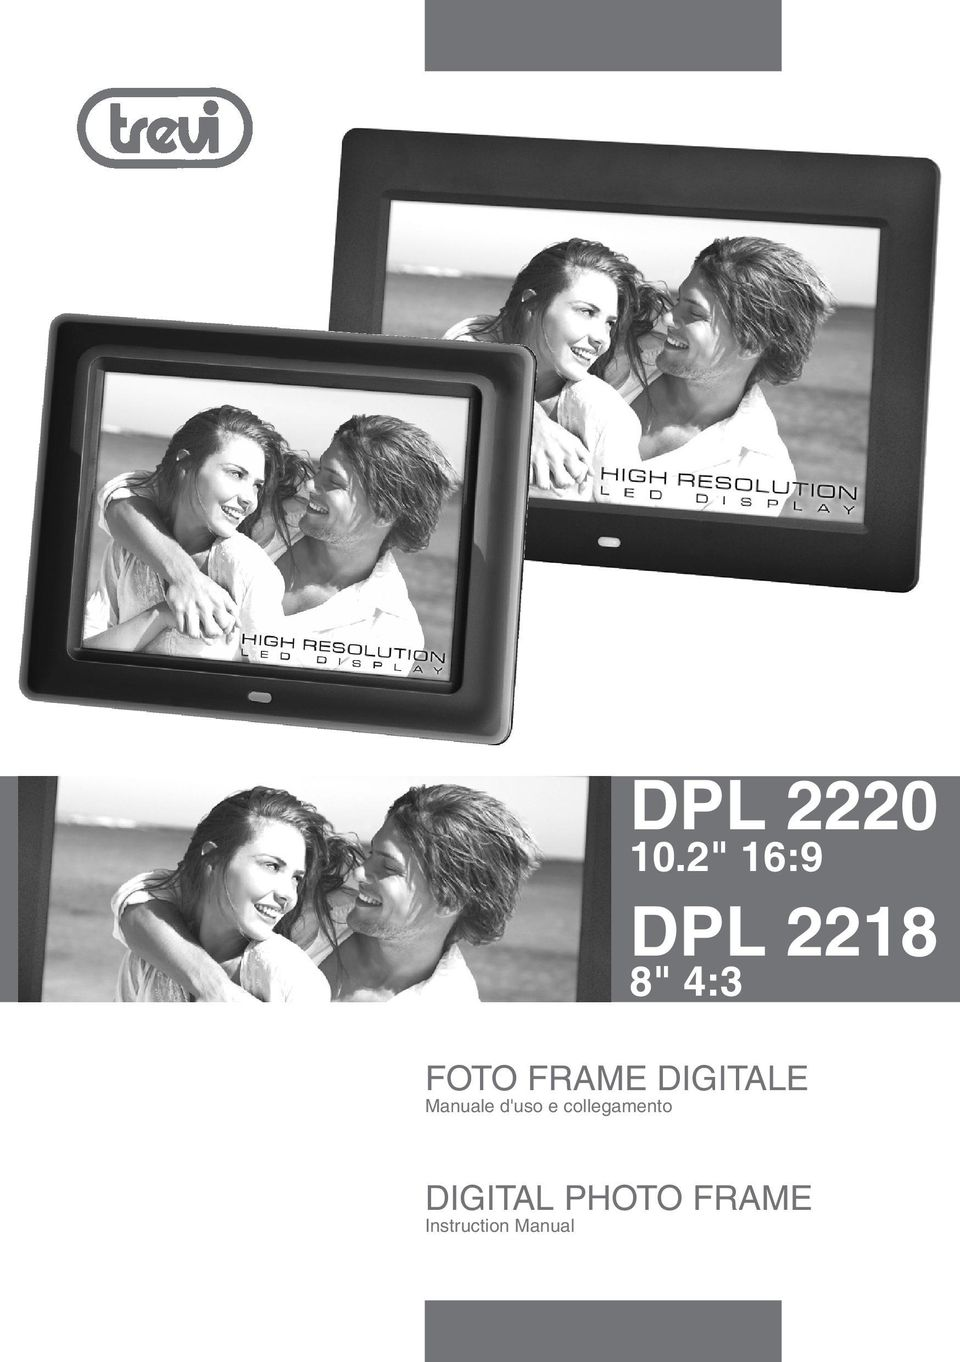 FRAME DIGITALE Manuale d'uso e